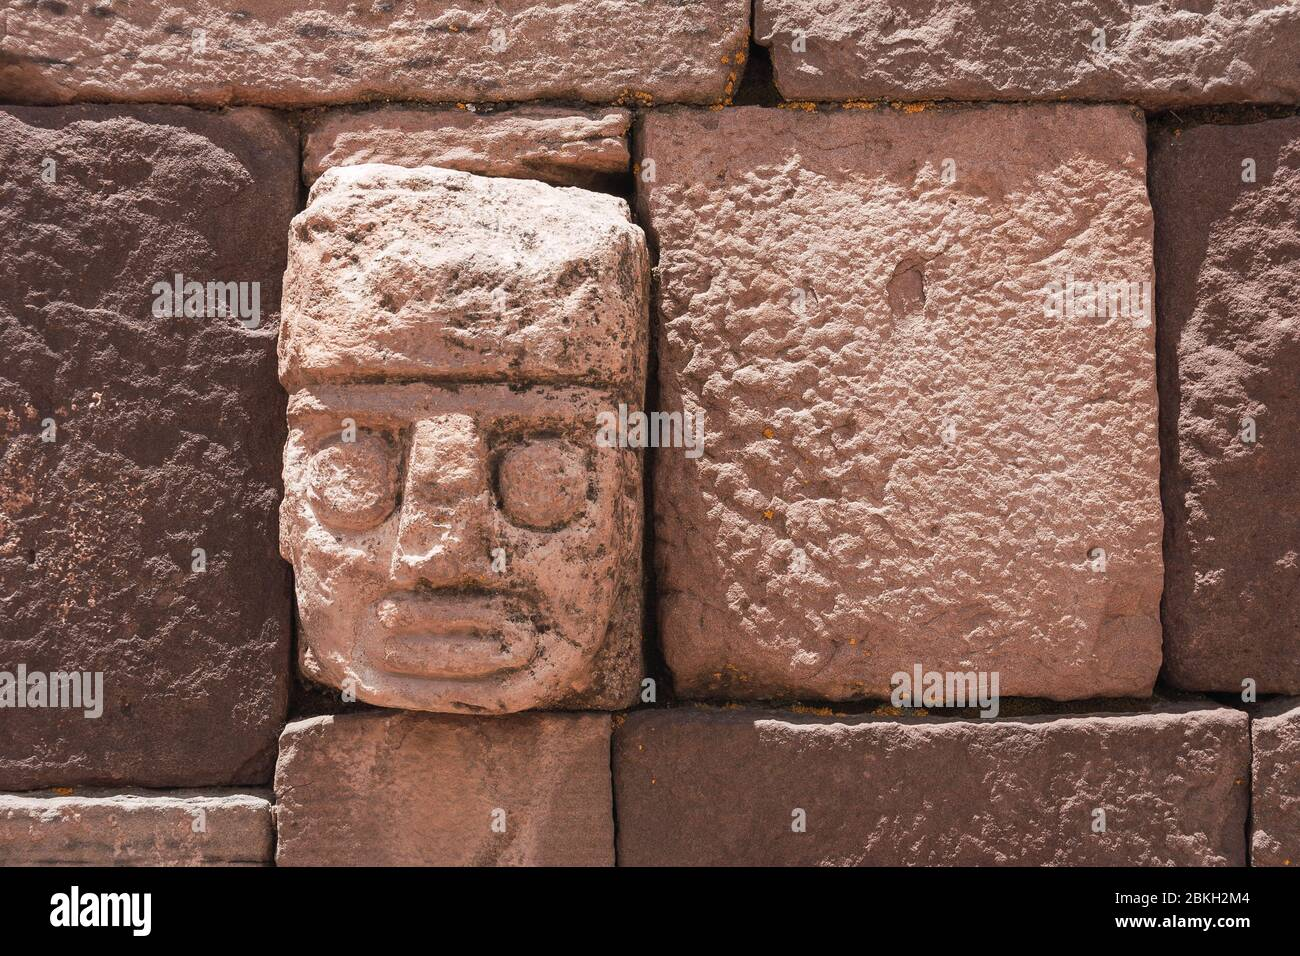 detail of a sculpture of a head carved in relief at the pre-Columbian archaeological site in Tiwanaku, Bolivia Stock Photo